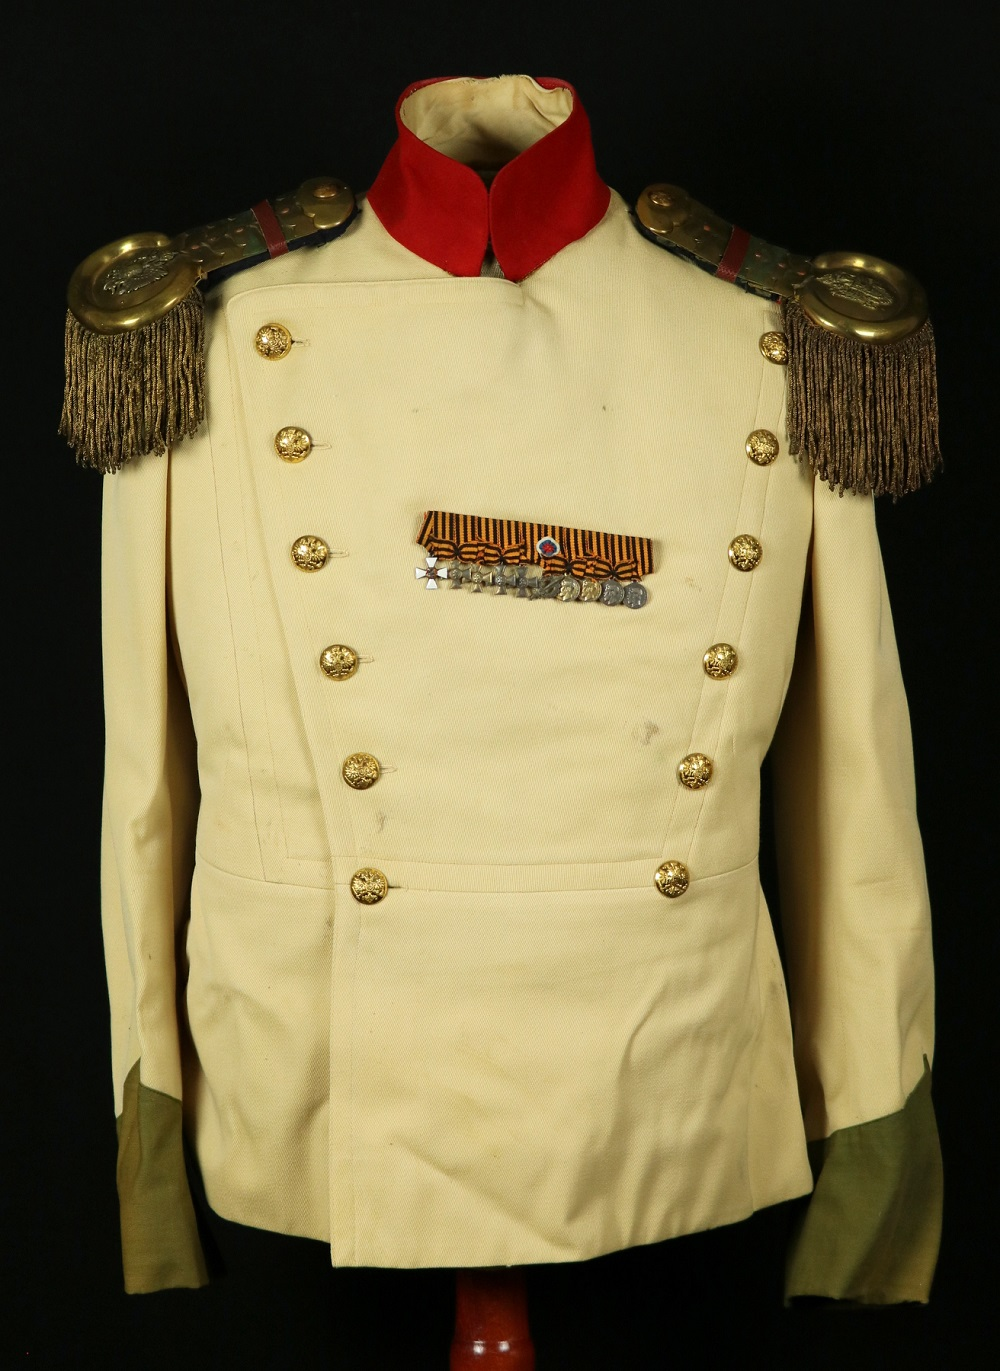 Russian Imperial Military Officer's Uniform Tunic with Miniature Medals/Orders (some Silver) & Epaulettes.